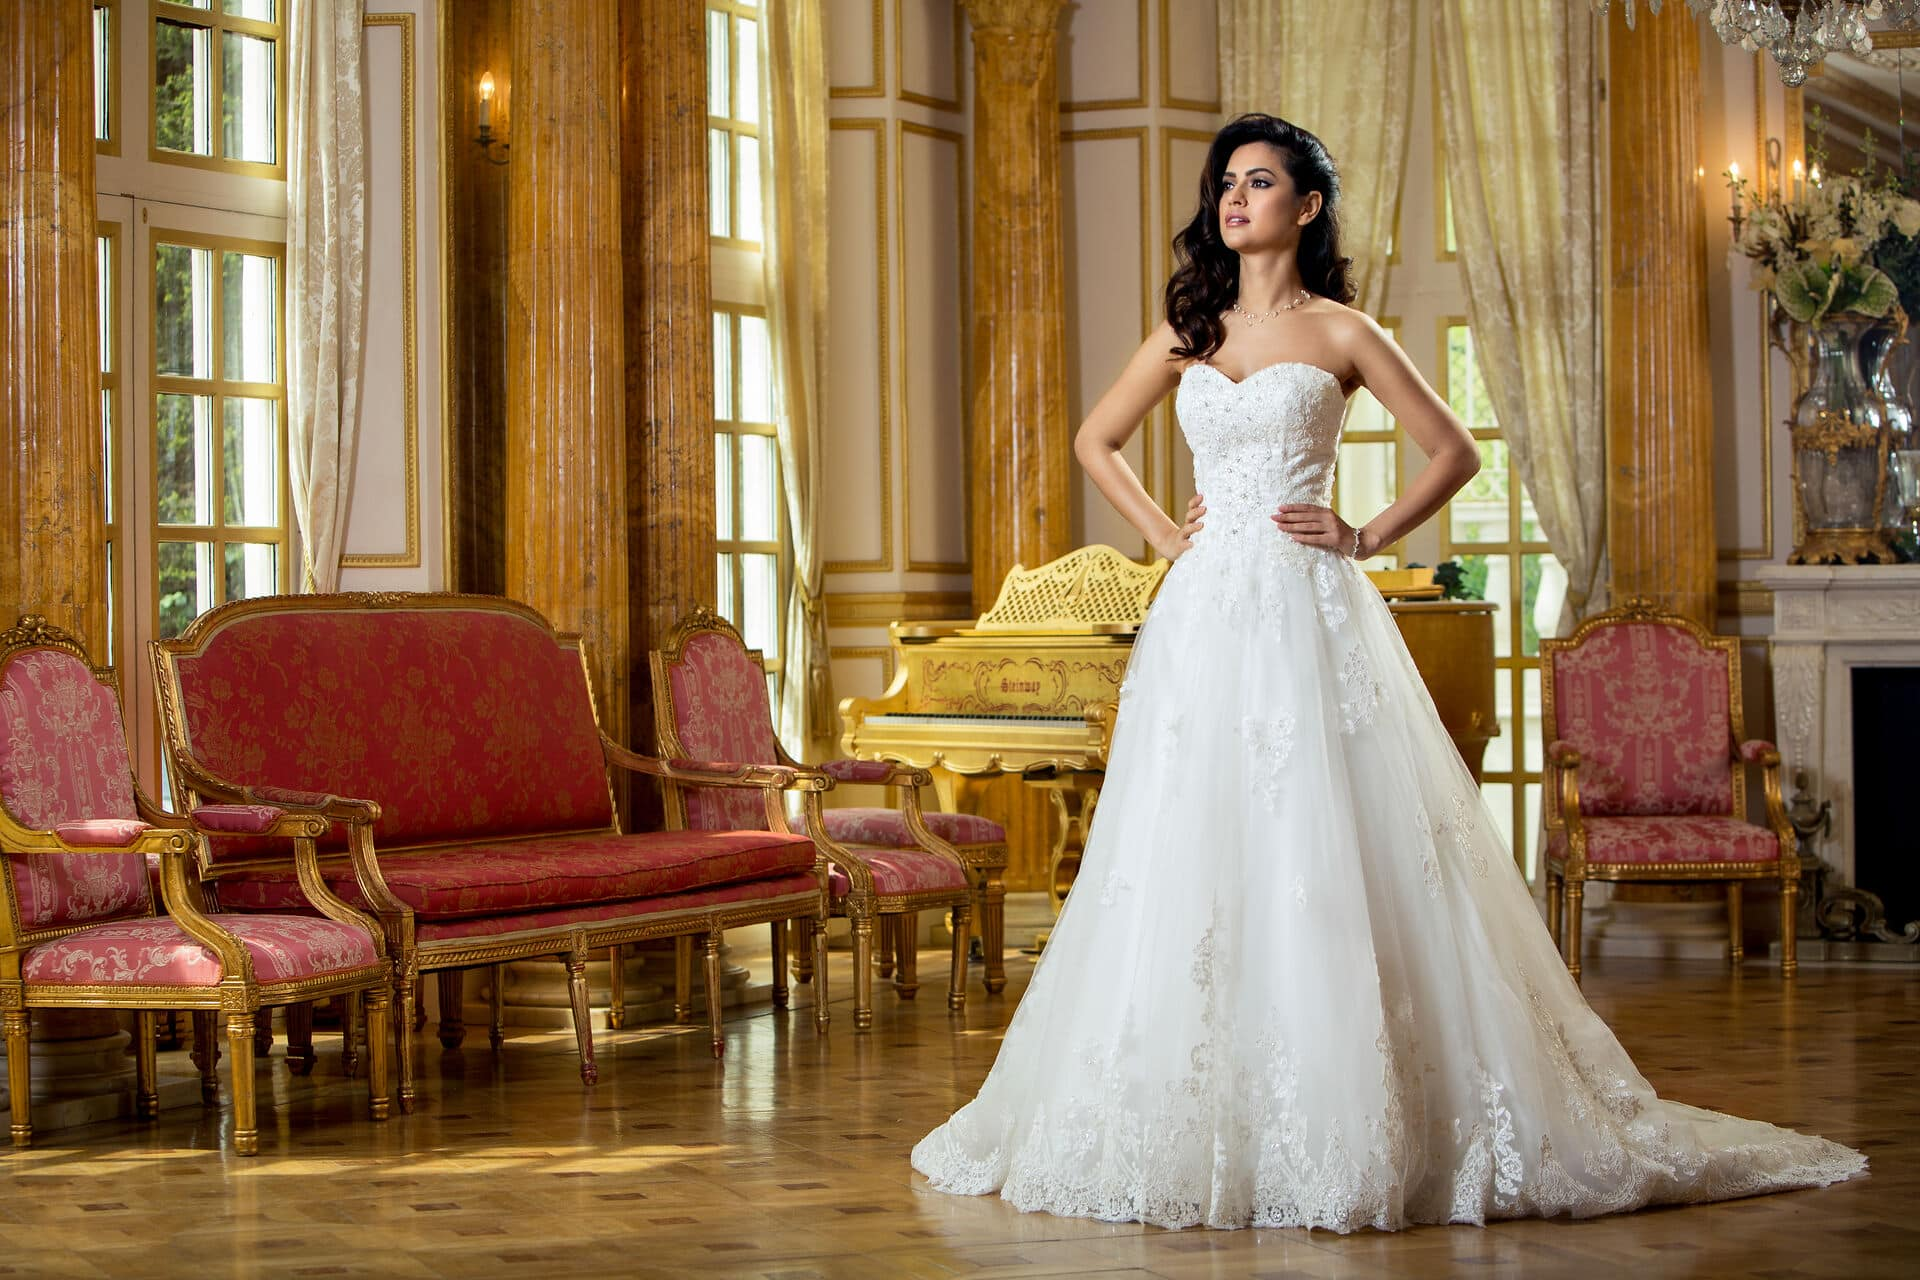 Fashion Campaign Photography London Bridal collection photo by Jarek Duk